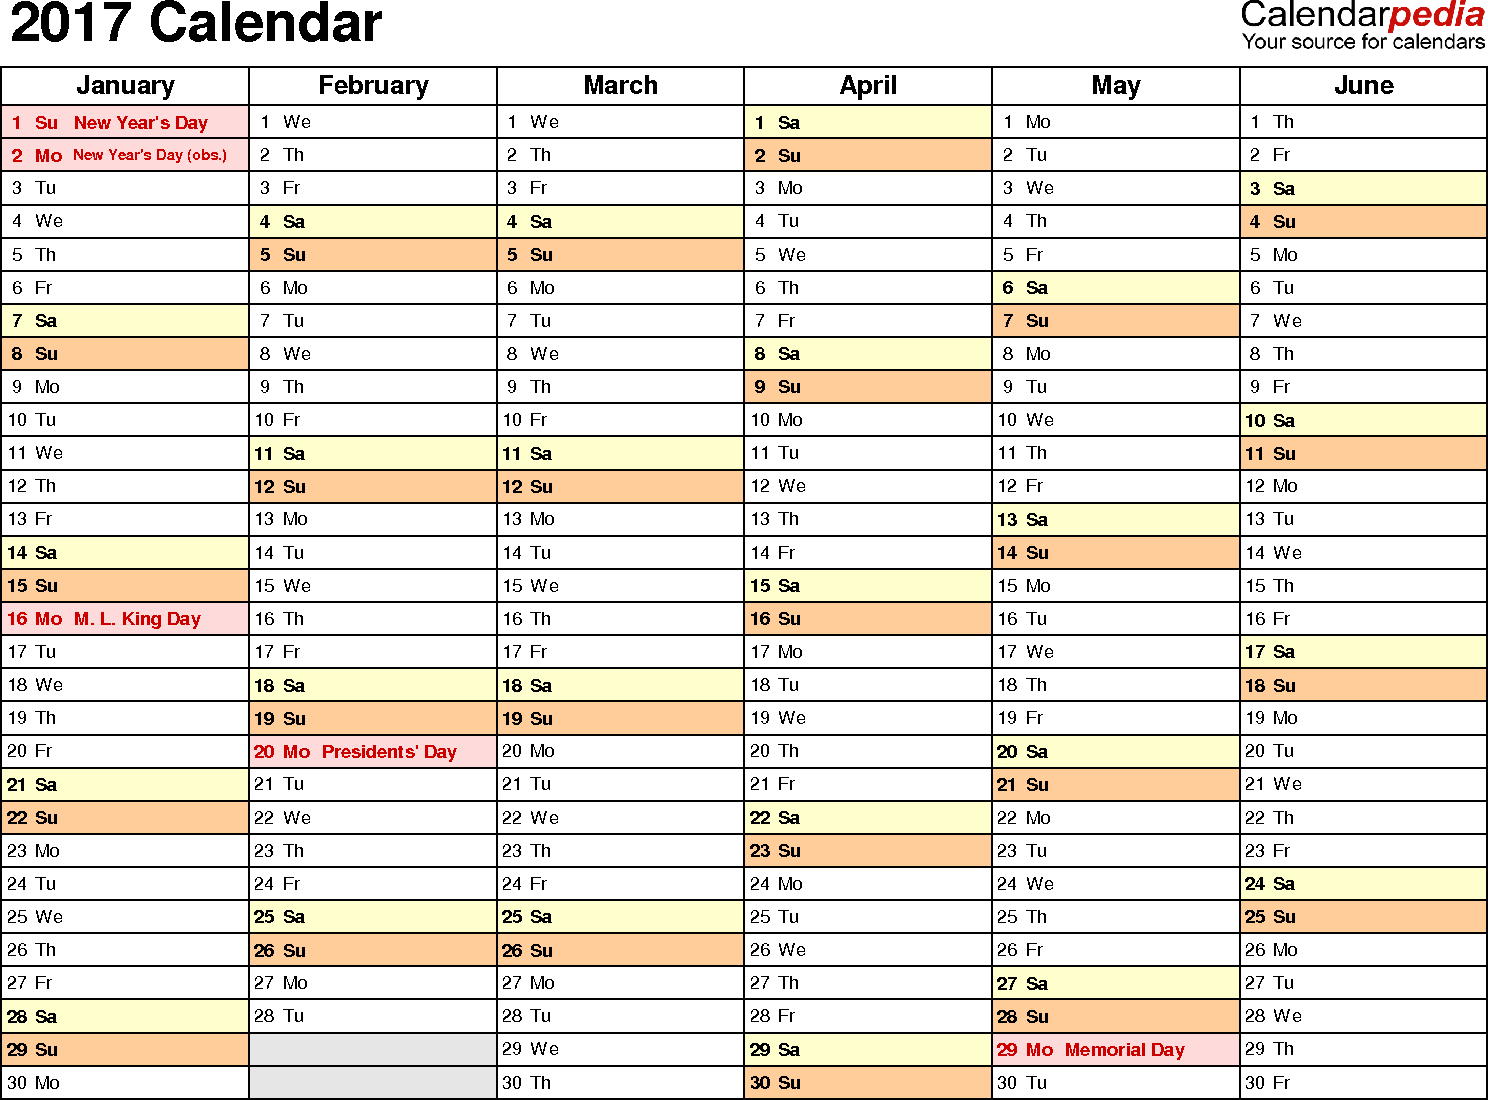 Ediblewildsus  Marvellous  Calendar  Download  Free Printable Excel Templates Xls With Likable Template   Calendar For Excel Months Horizontally  Pages Landscape Orientation With Beauteous Vba Excel Cells Also Excel Translate In Addition Reducing Excel File Size And Add Month To Date Excel As Well As Excel Password Protect File Additionally Excel Percentrank From Calendarpediacom With Ediblewildsus  Likable  Calendar  Download  Free Printable Excel Templates Xls With Beauteous Template   Calendar For Excel Months Horizontally  Pages Landscape Orientation And Marvellous Vba Excel Cells Also Excel Translate In Addition Reducing Excel File Size From Calendarpediacom